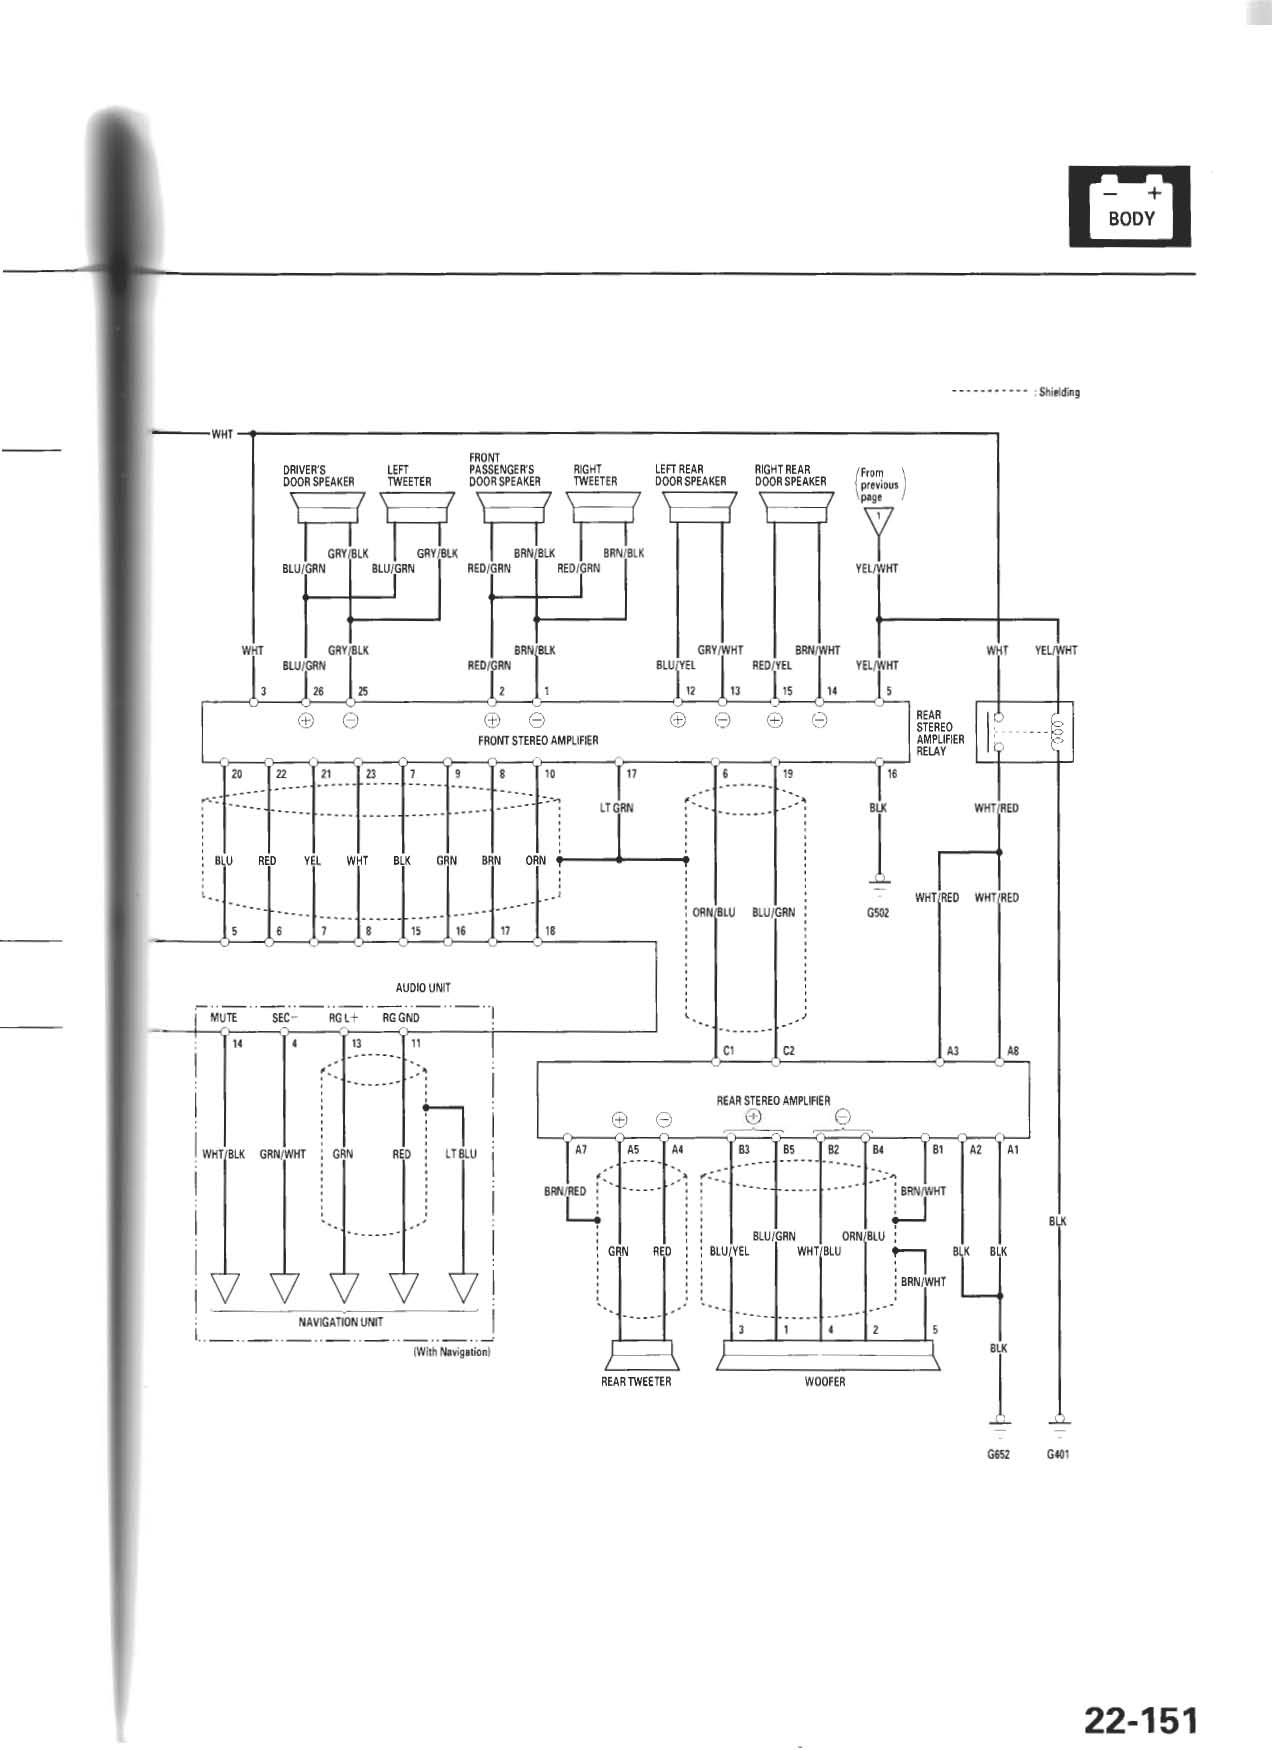 hight resolution of retrofit 01 04 mdx w bluetooth page 2 acura mdx forum acura rh mdxers org wiring diagram 2007 acura mdx 2004 acura mdx amp wiring diagram